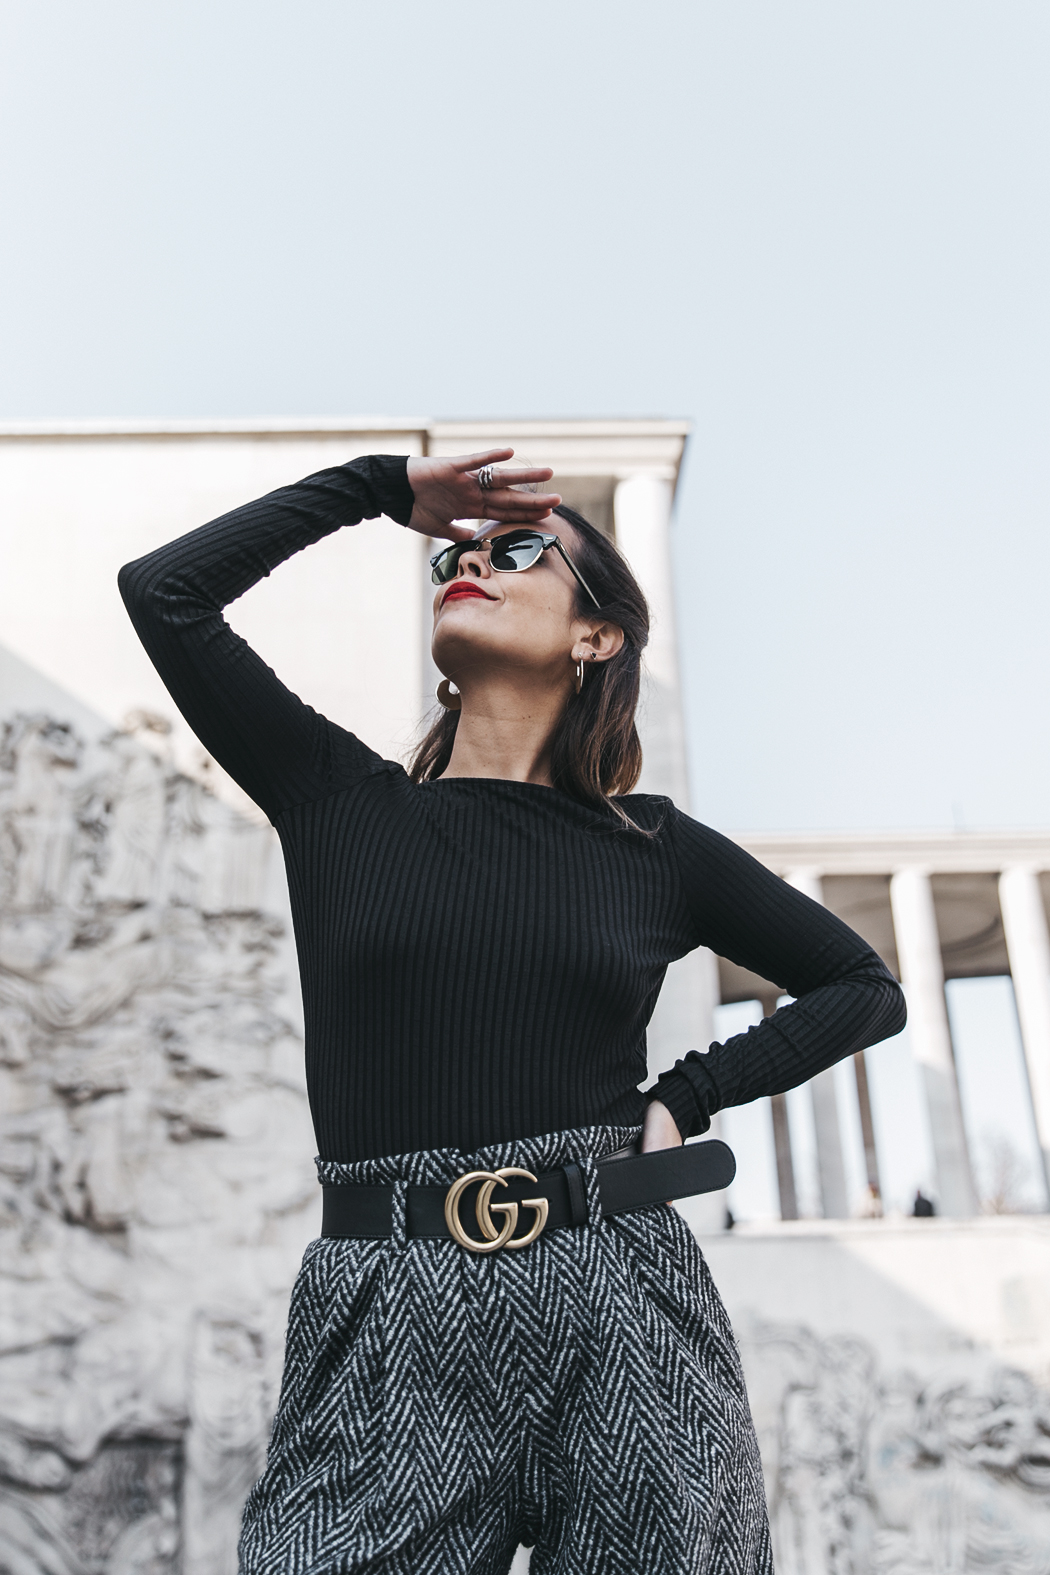 Black_Body-Leather_Jacket-Celine_boots-Gucci_Belt-Wide_Leg_Trousers-Street_Style-30